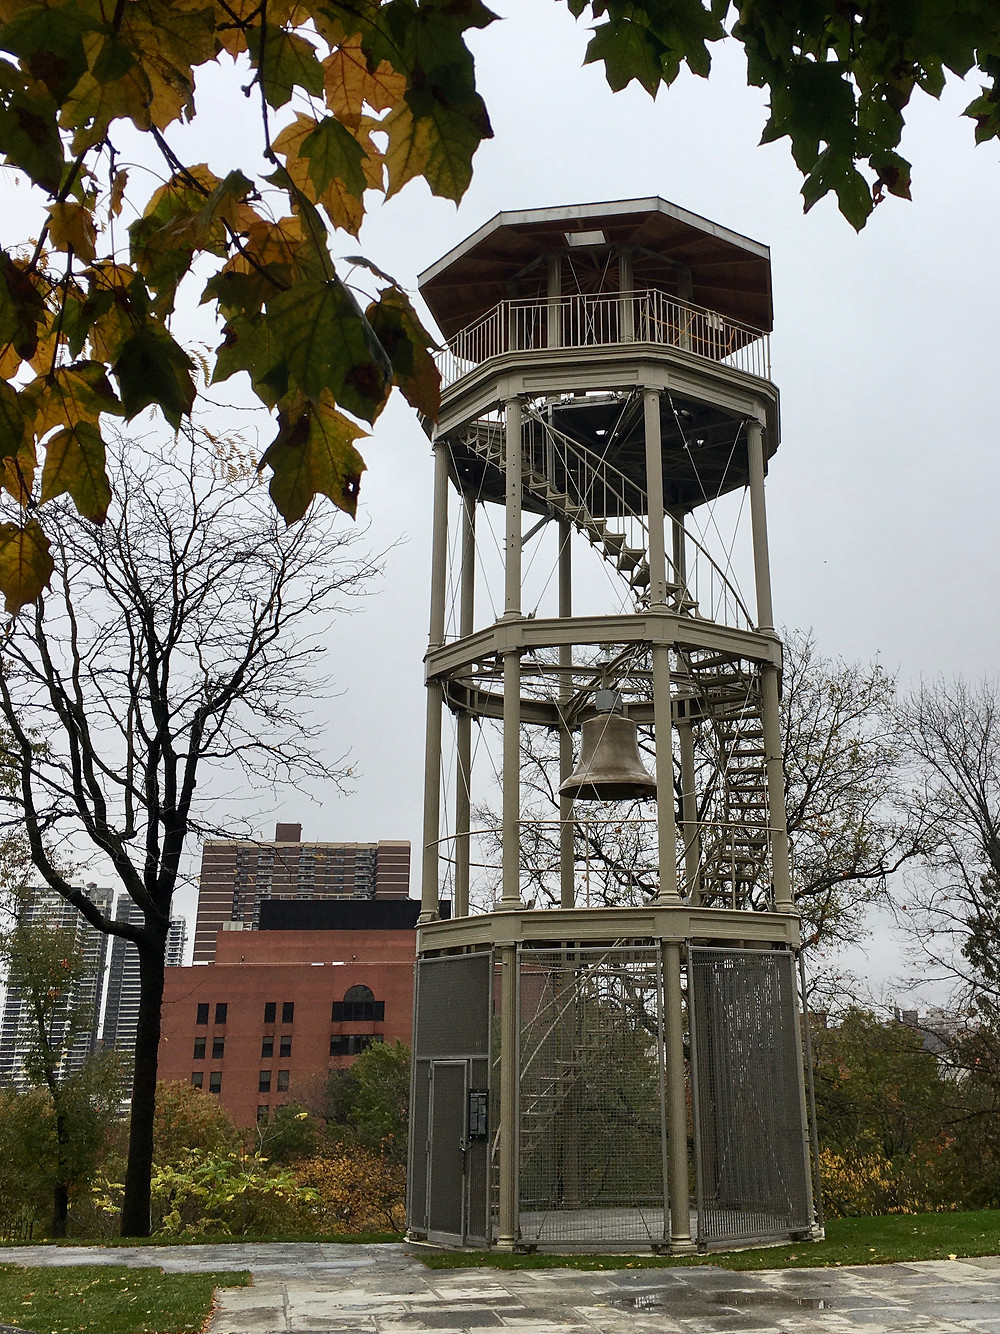 The Mount Morris Fire Watchtower in Harlem